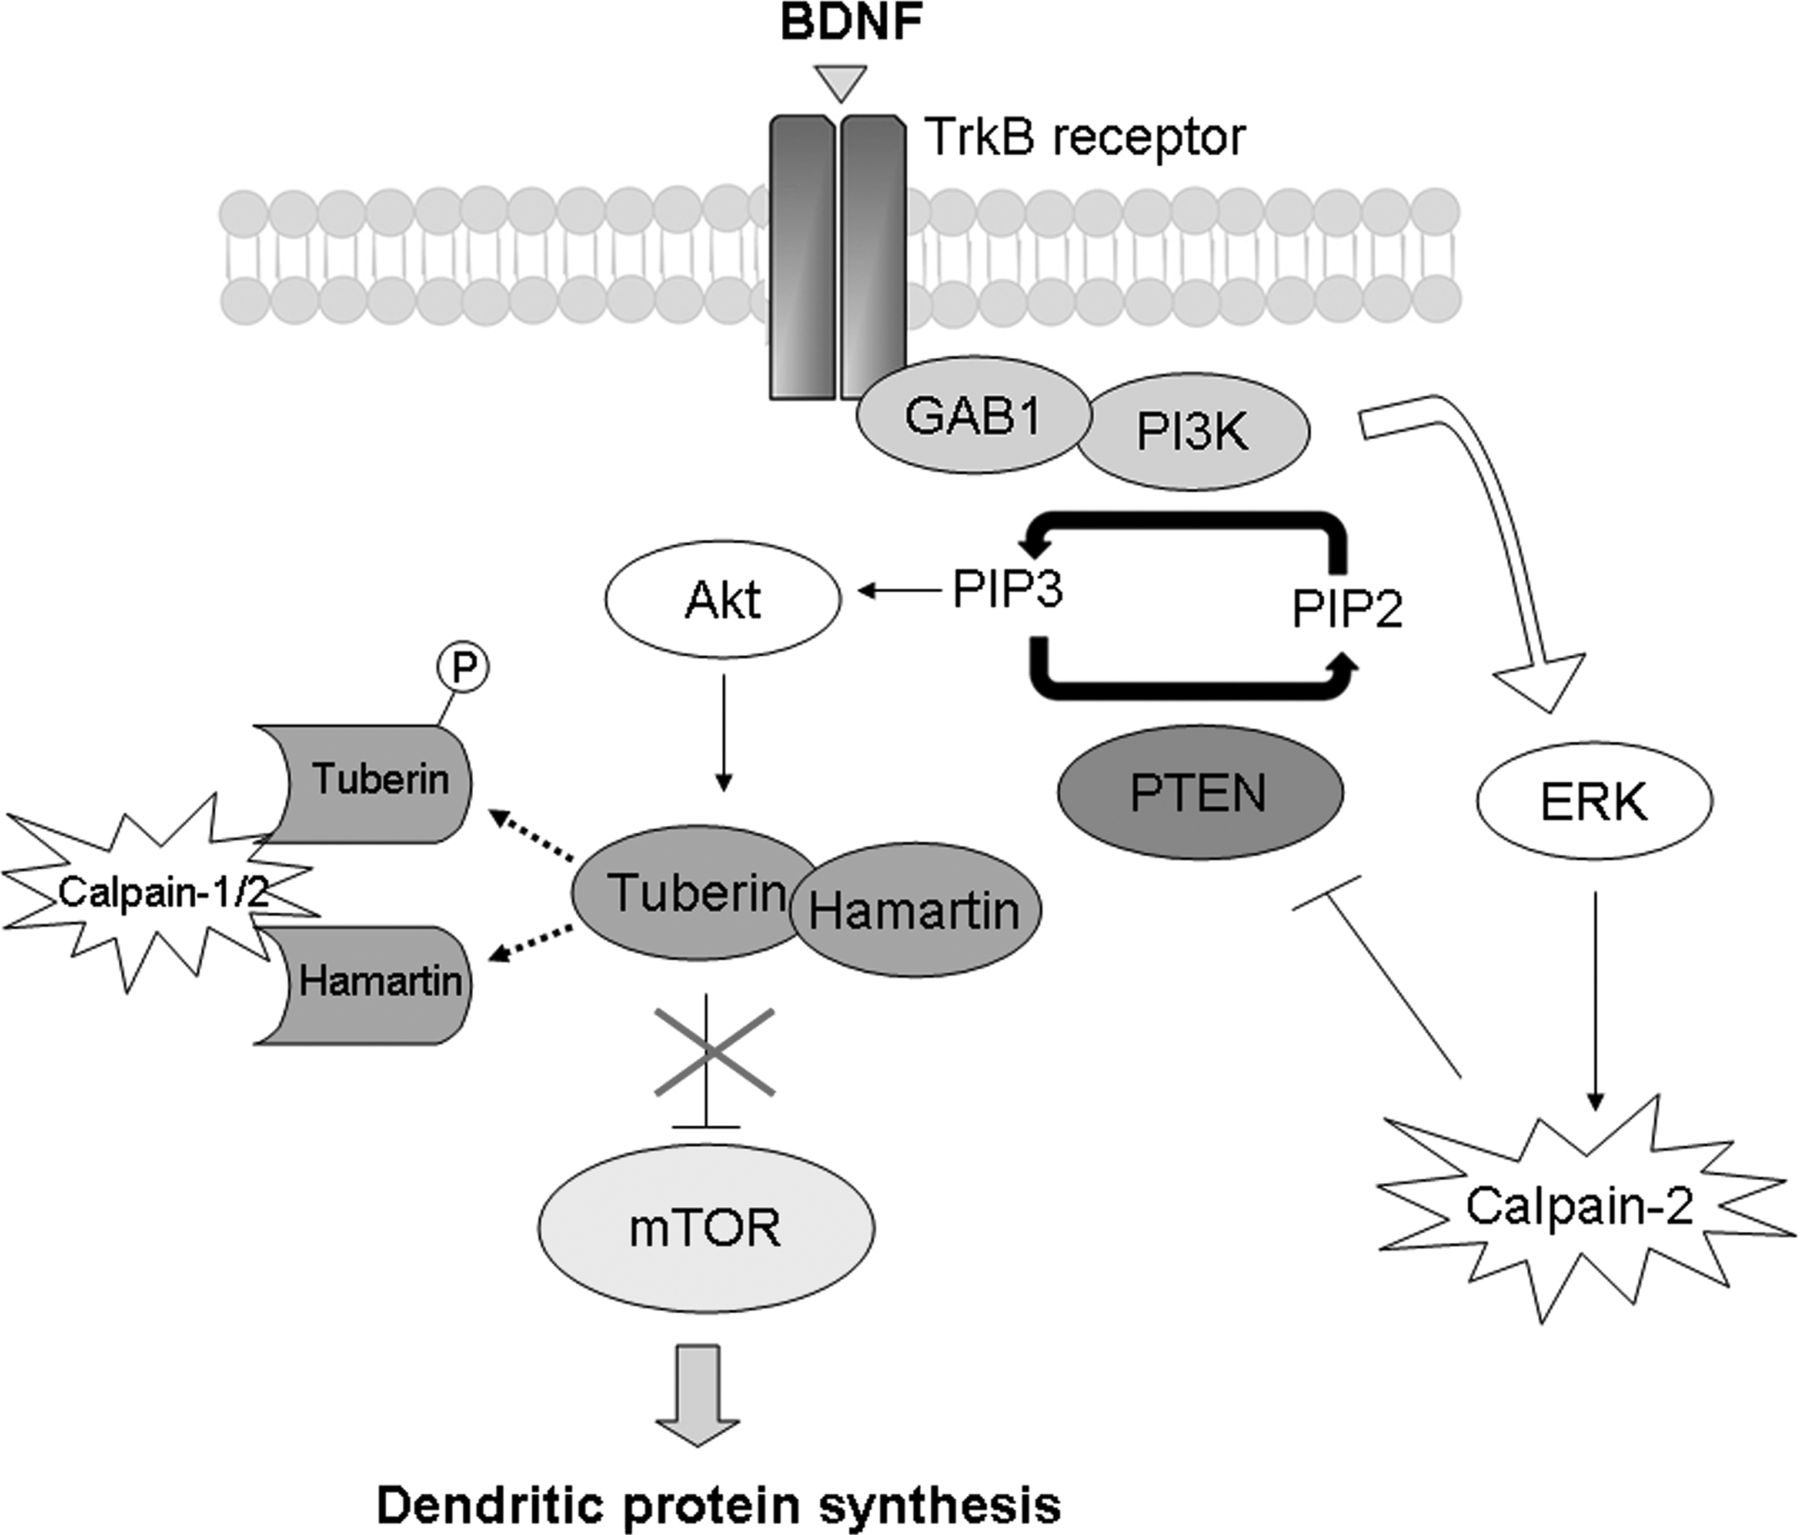 Calpain 2 Mediated Pten Degradation Contributes To Bdnf Induced Stimulation Of Dendritic Protein